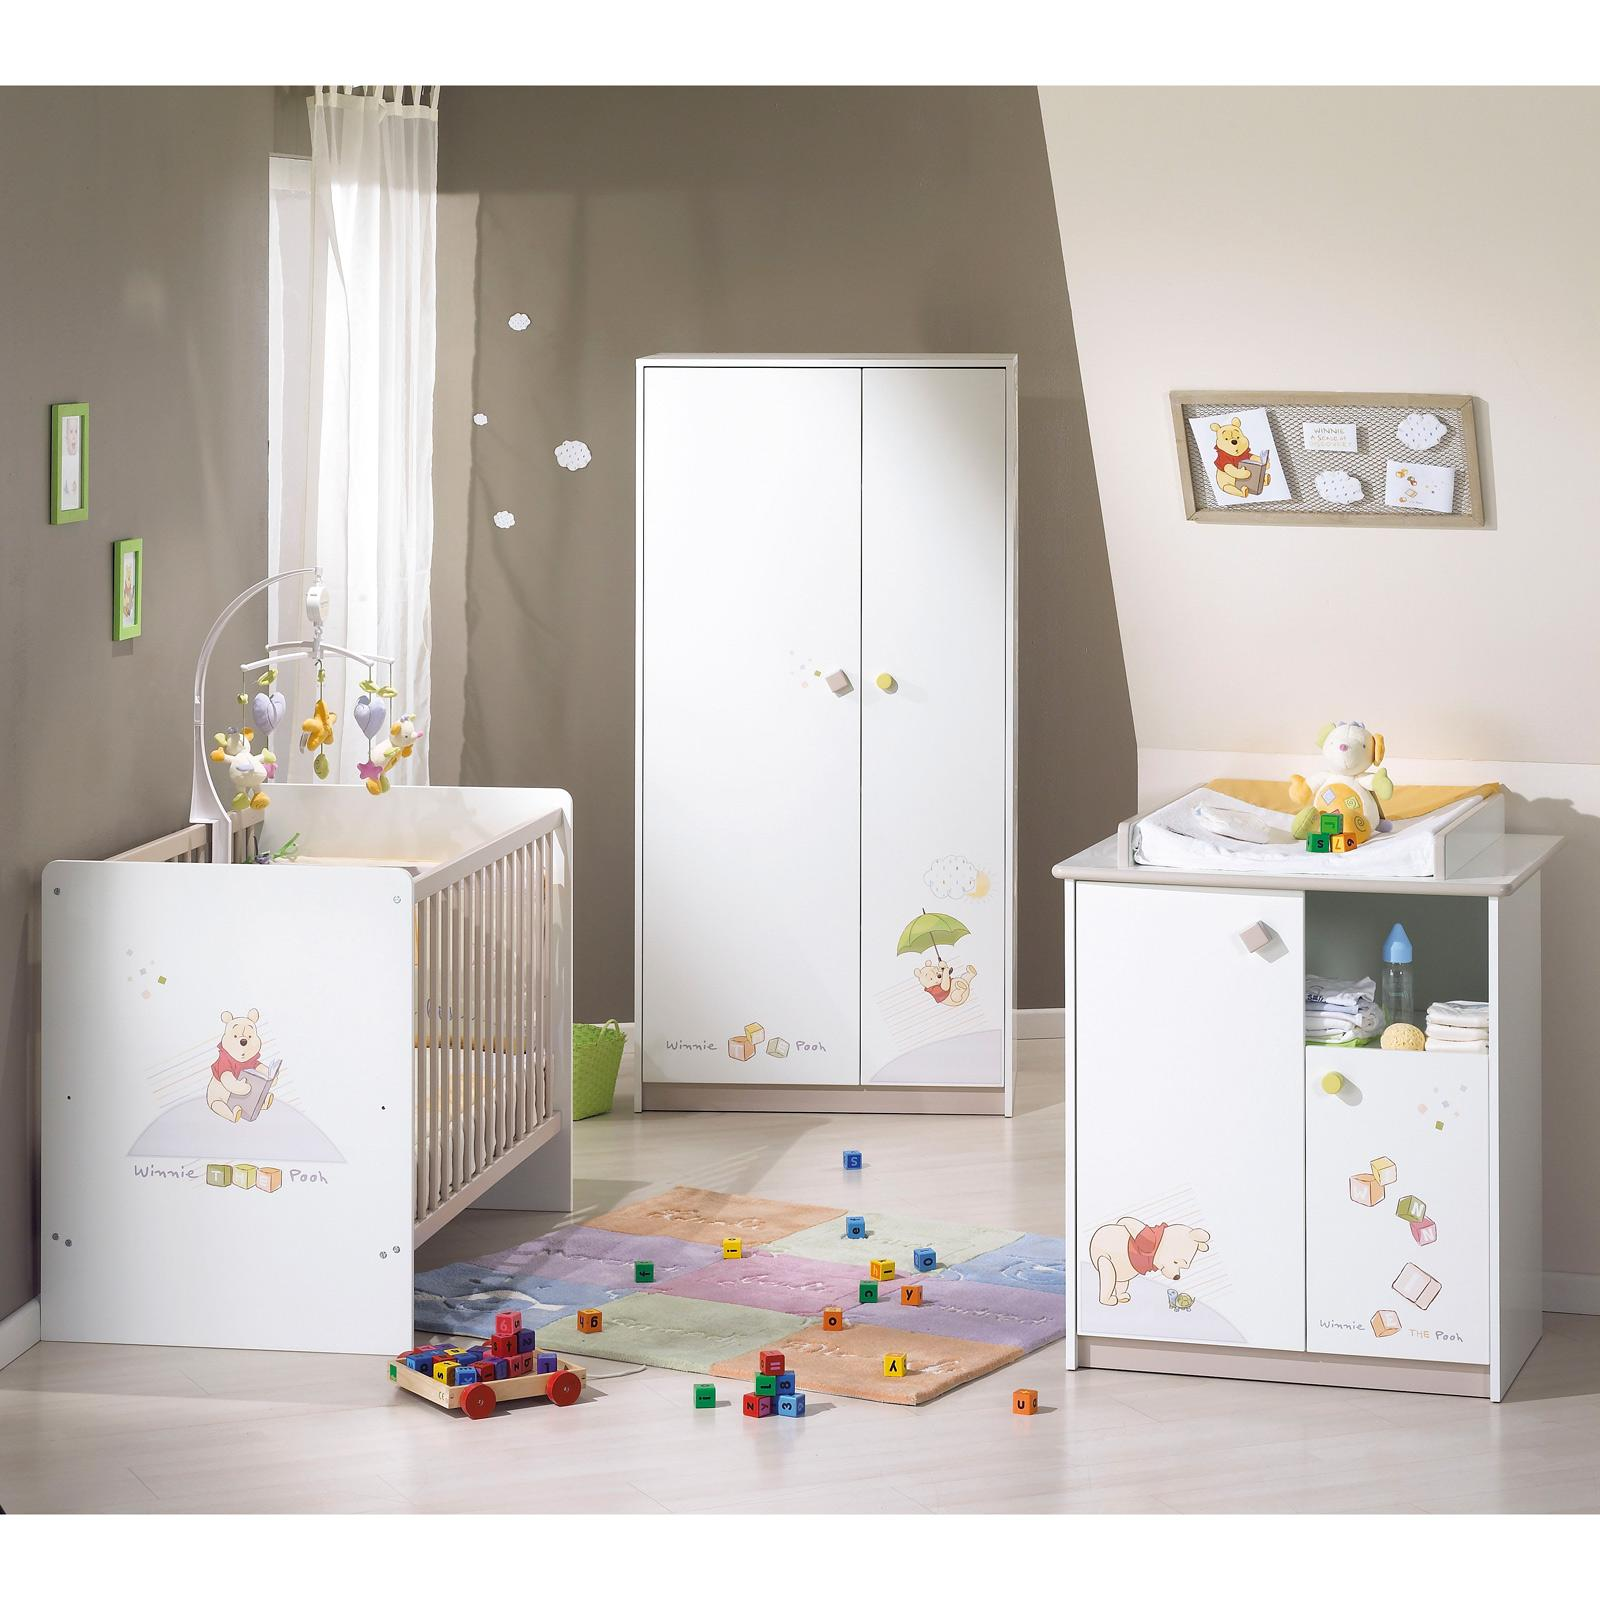 Decoration chambre winnie l ourson pas cher for Conforama chambre enfant